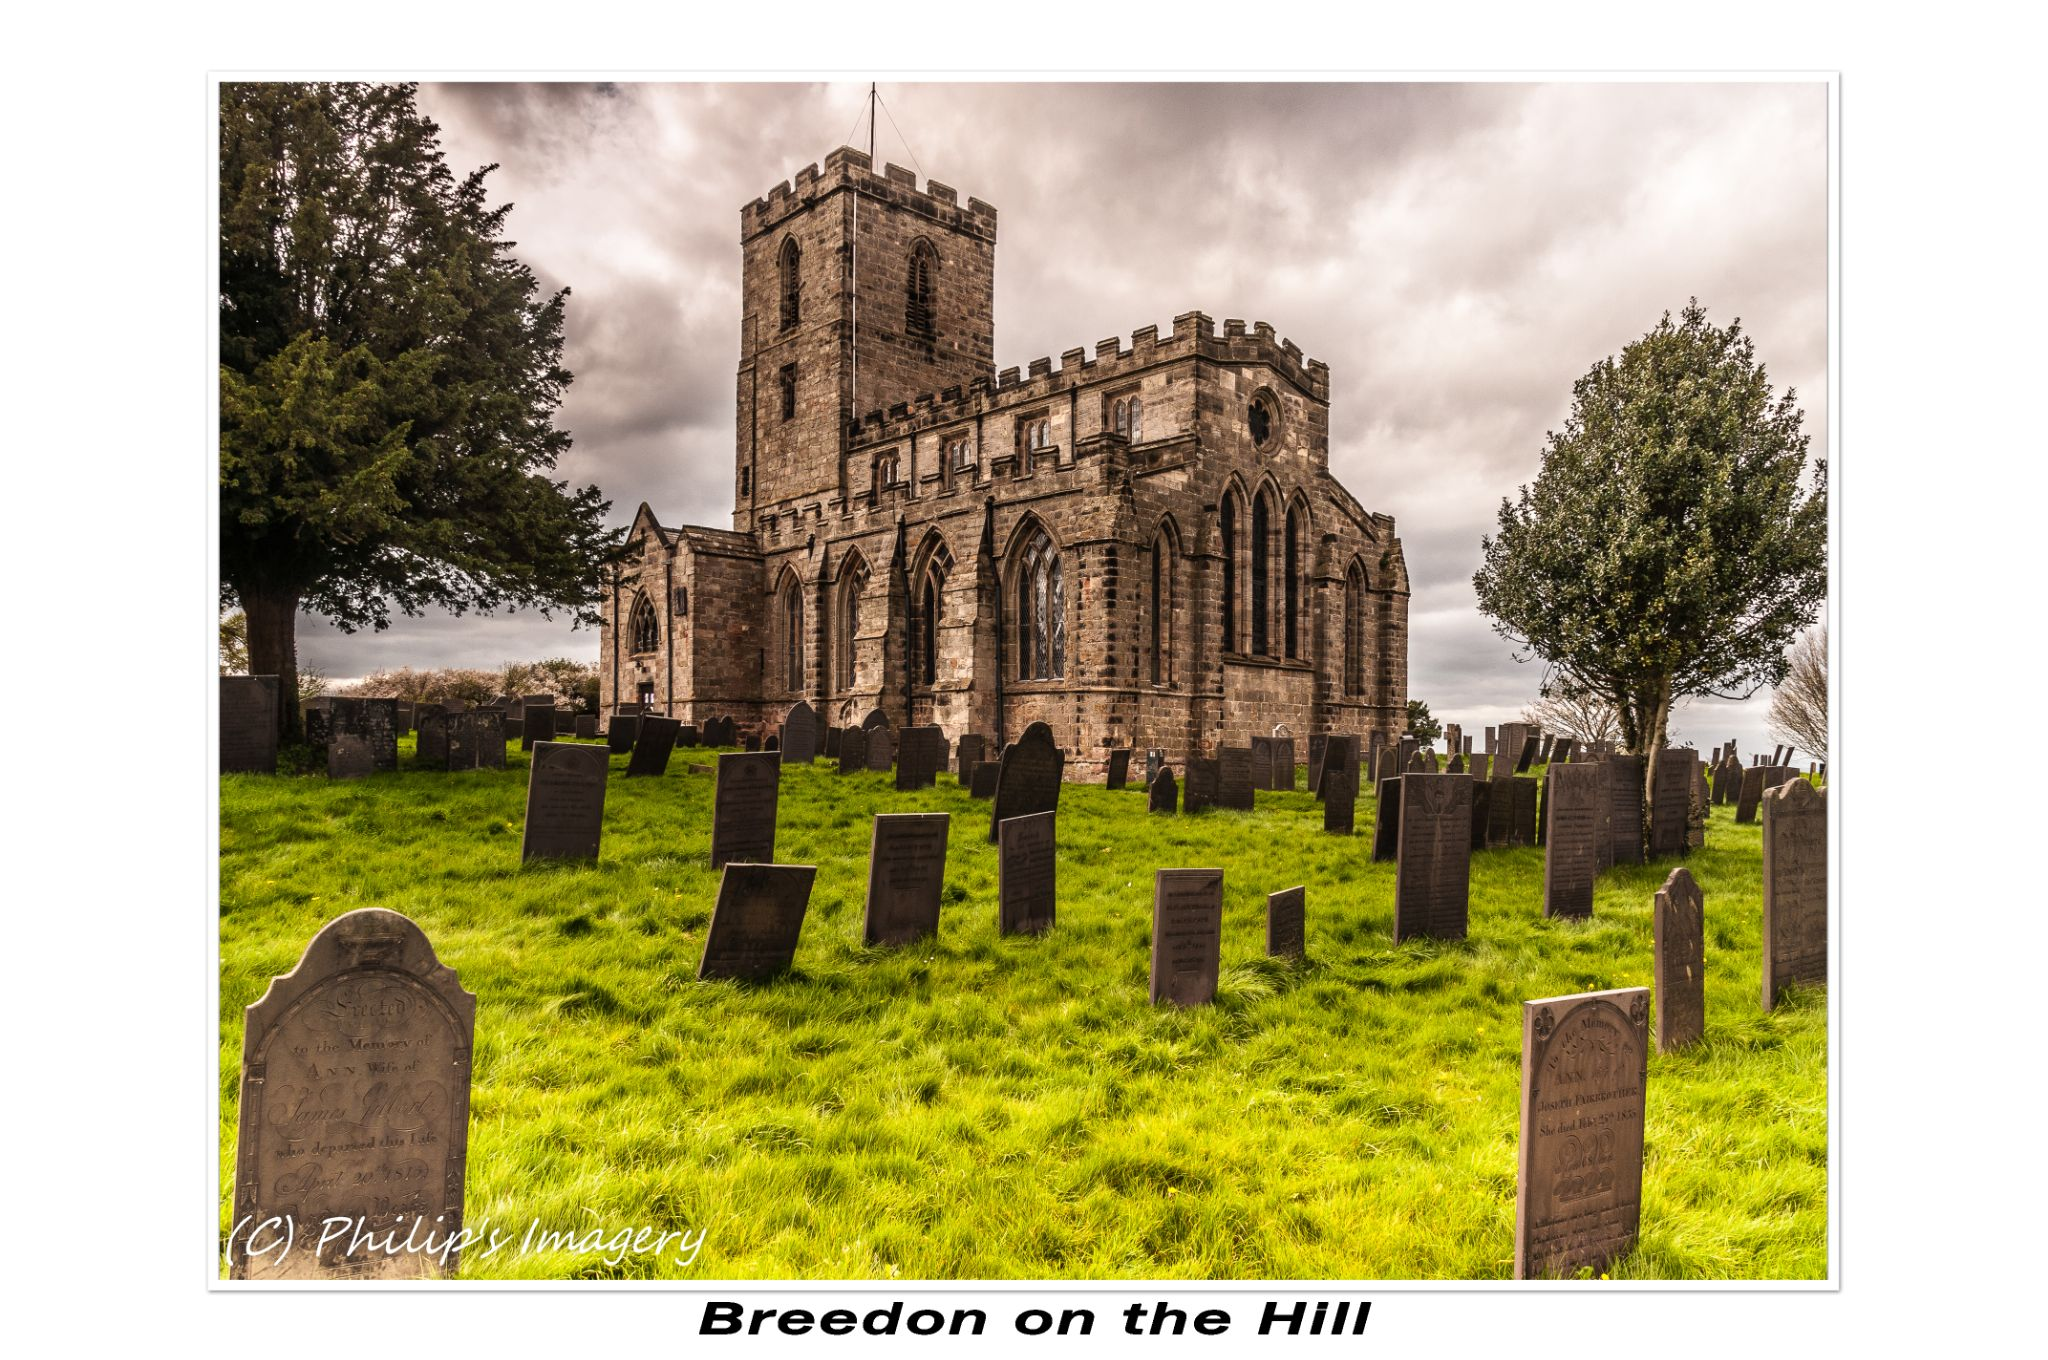 Breedon on the Hill by philips images